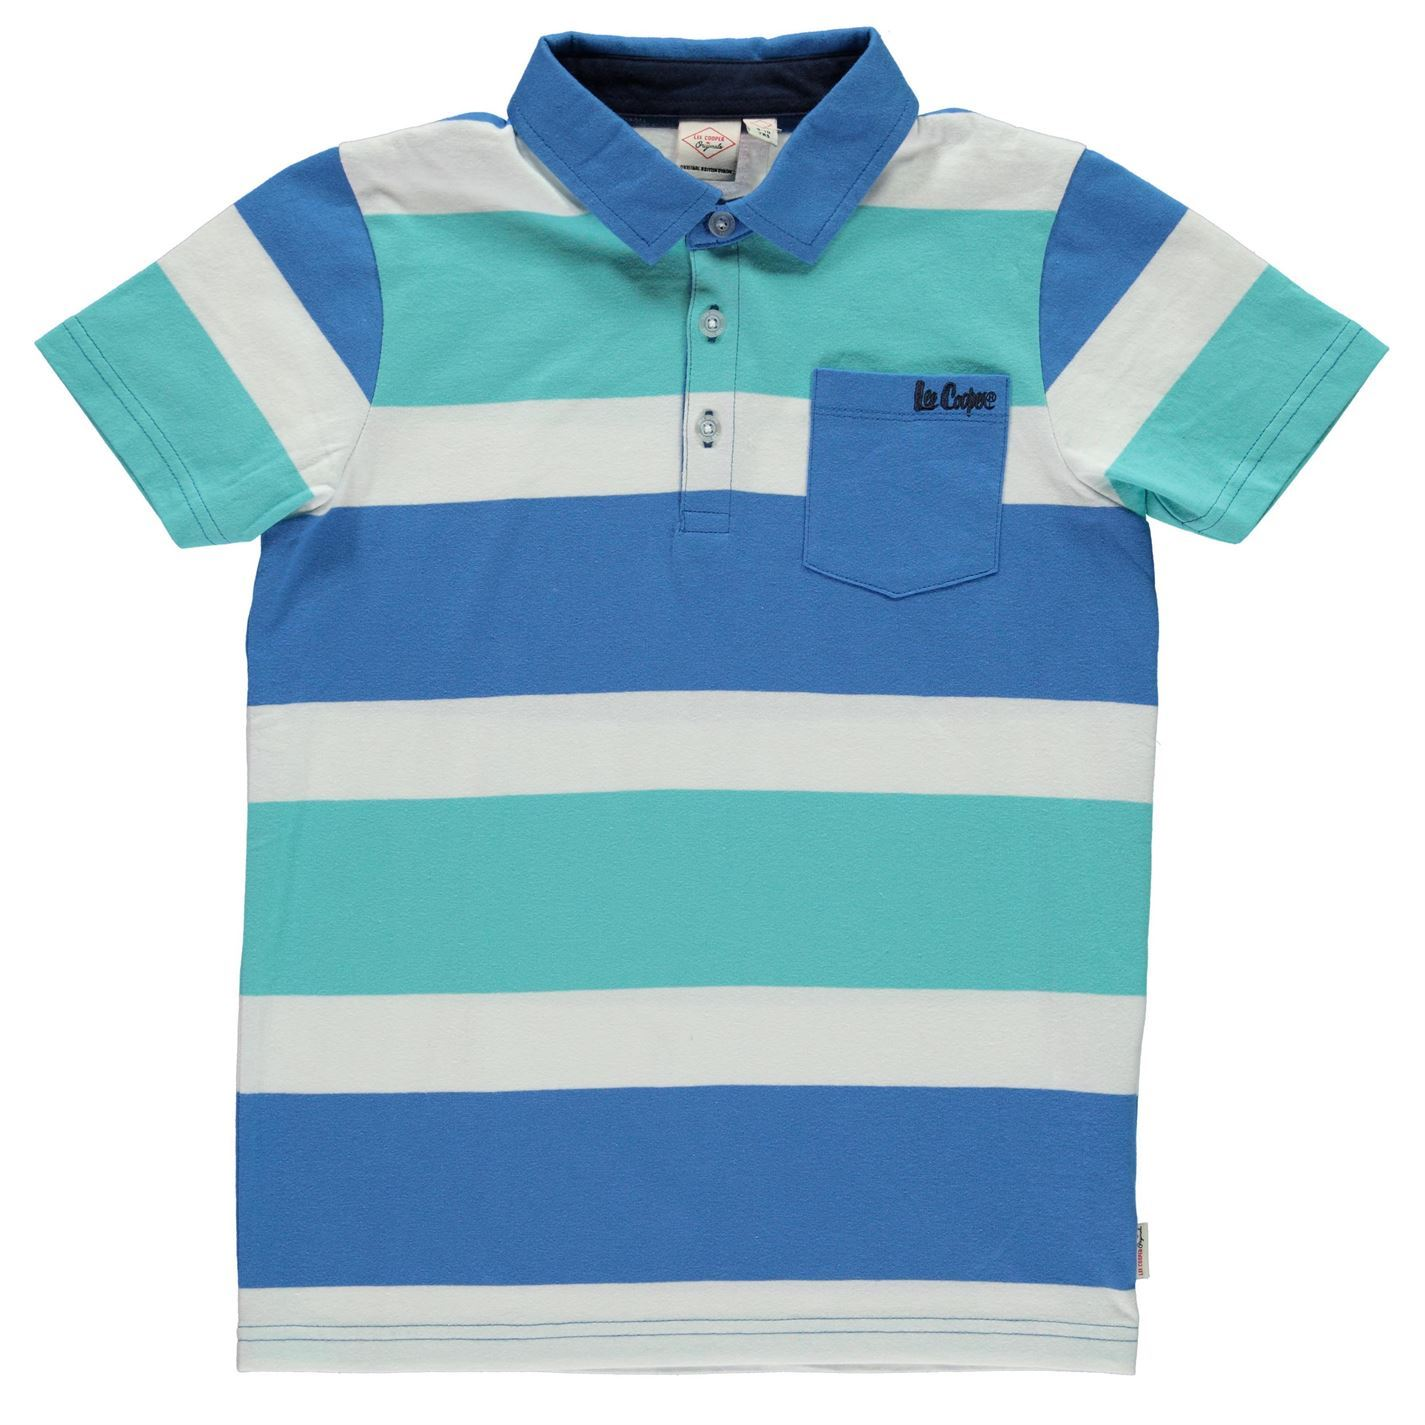 Lee-Cooper-Kids-Stripe-Polo-Shirt-Junior-Classic-Fit-Tee-Top-Short-Sleeve-Chest